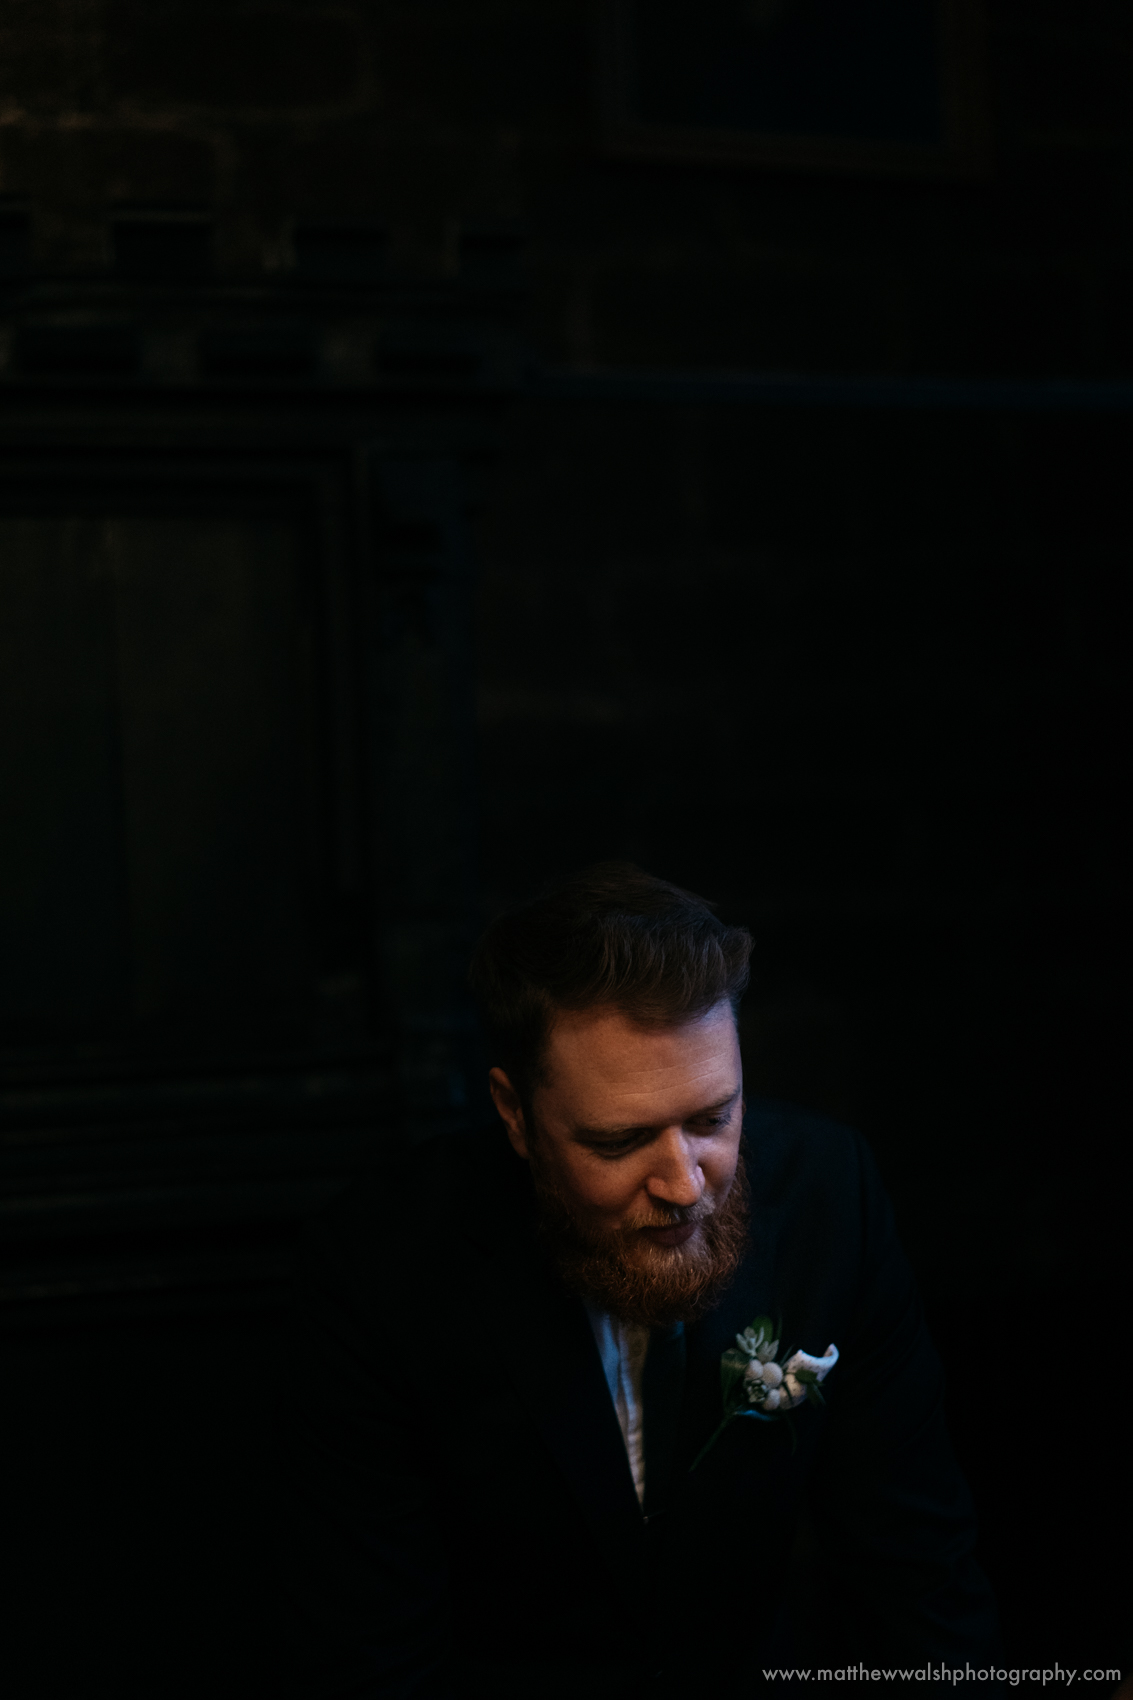 The groom making his final preparations in the dark light of the wedding venue